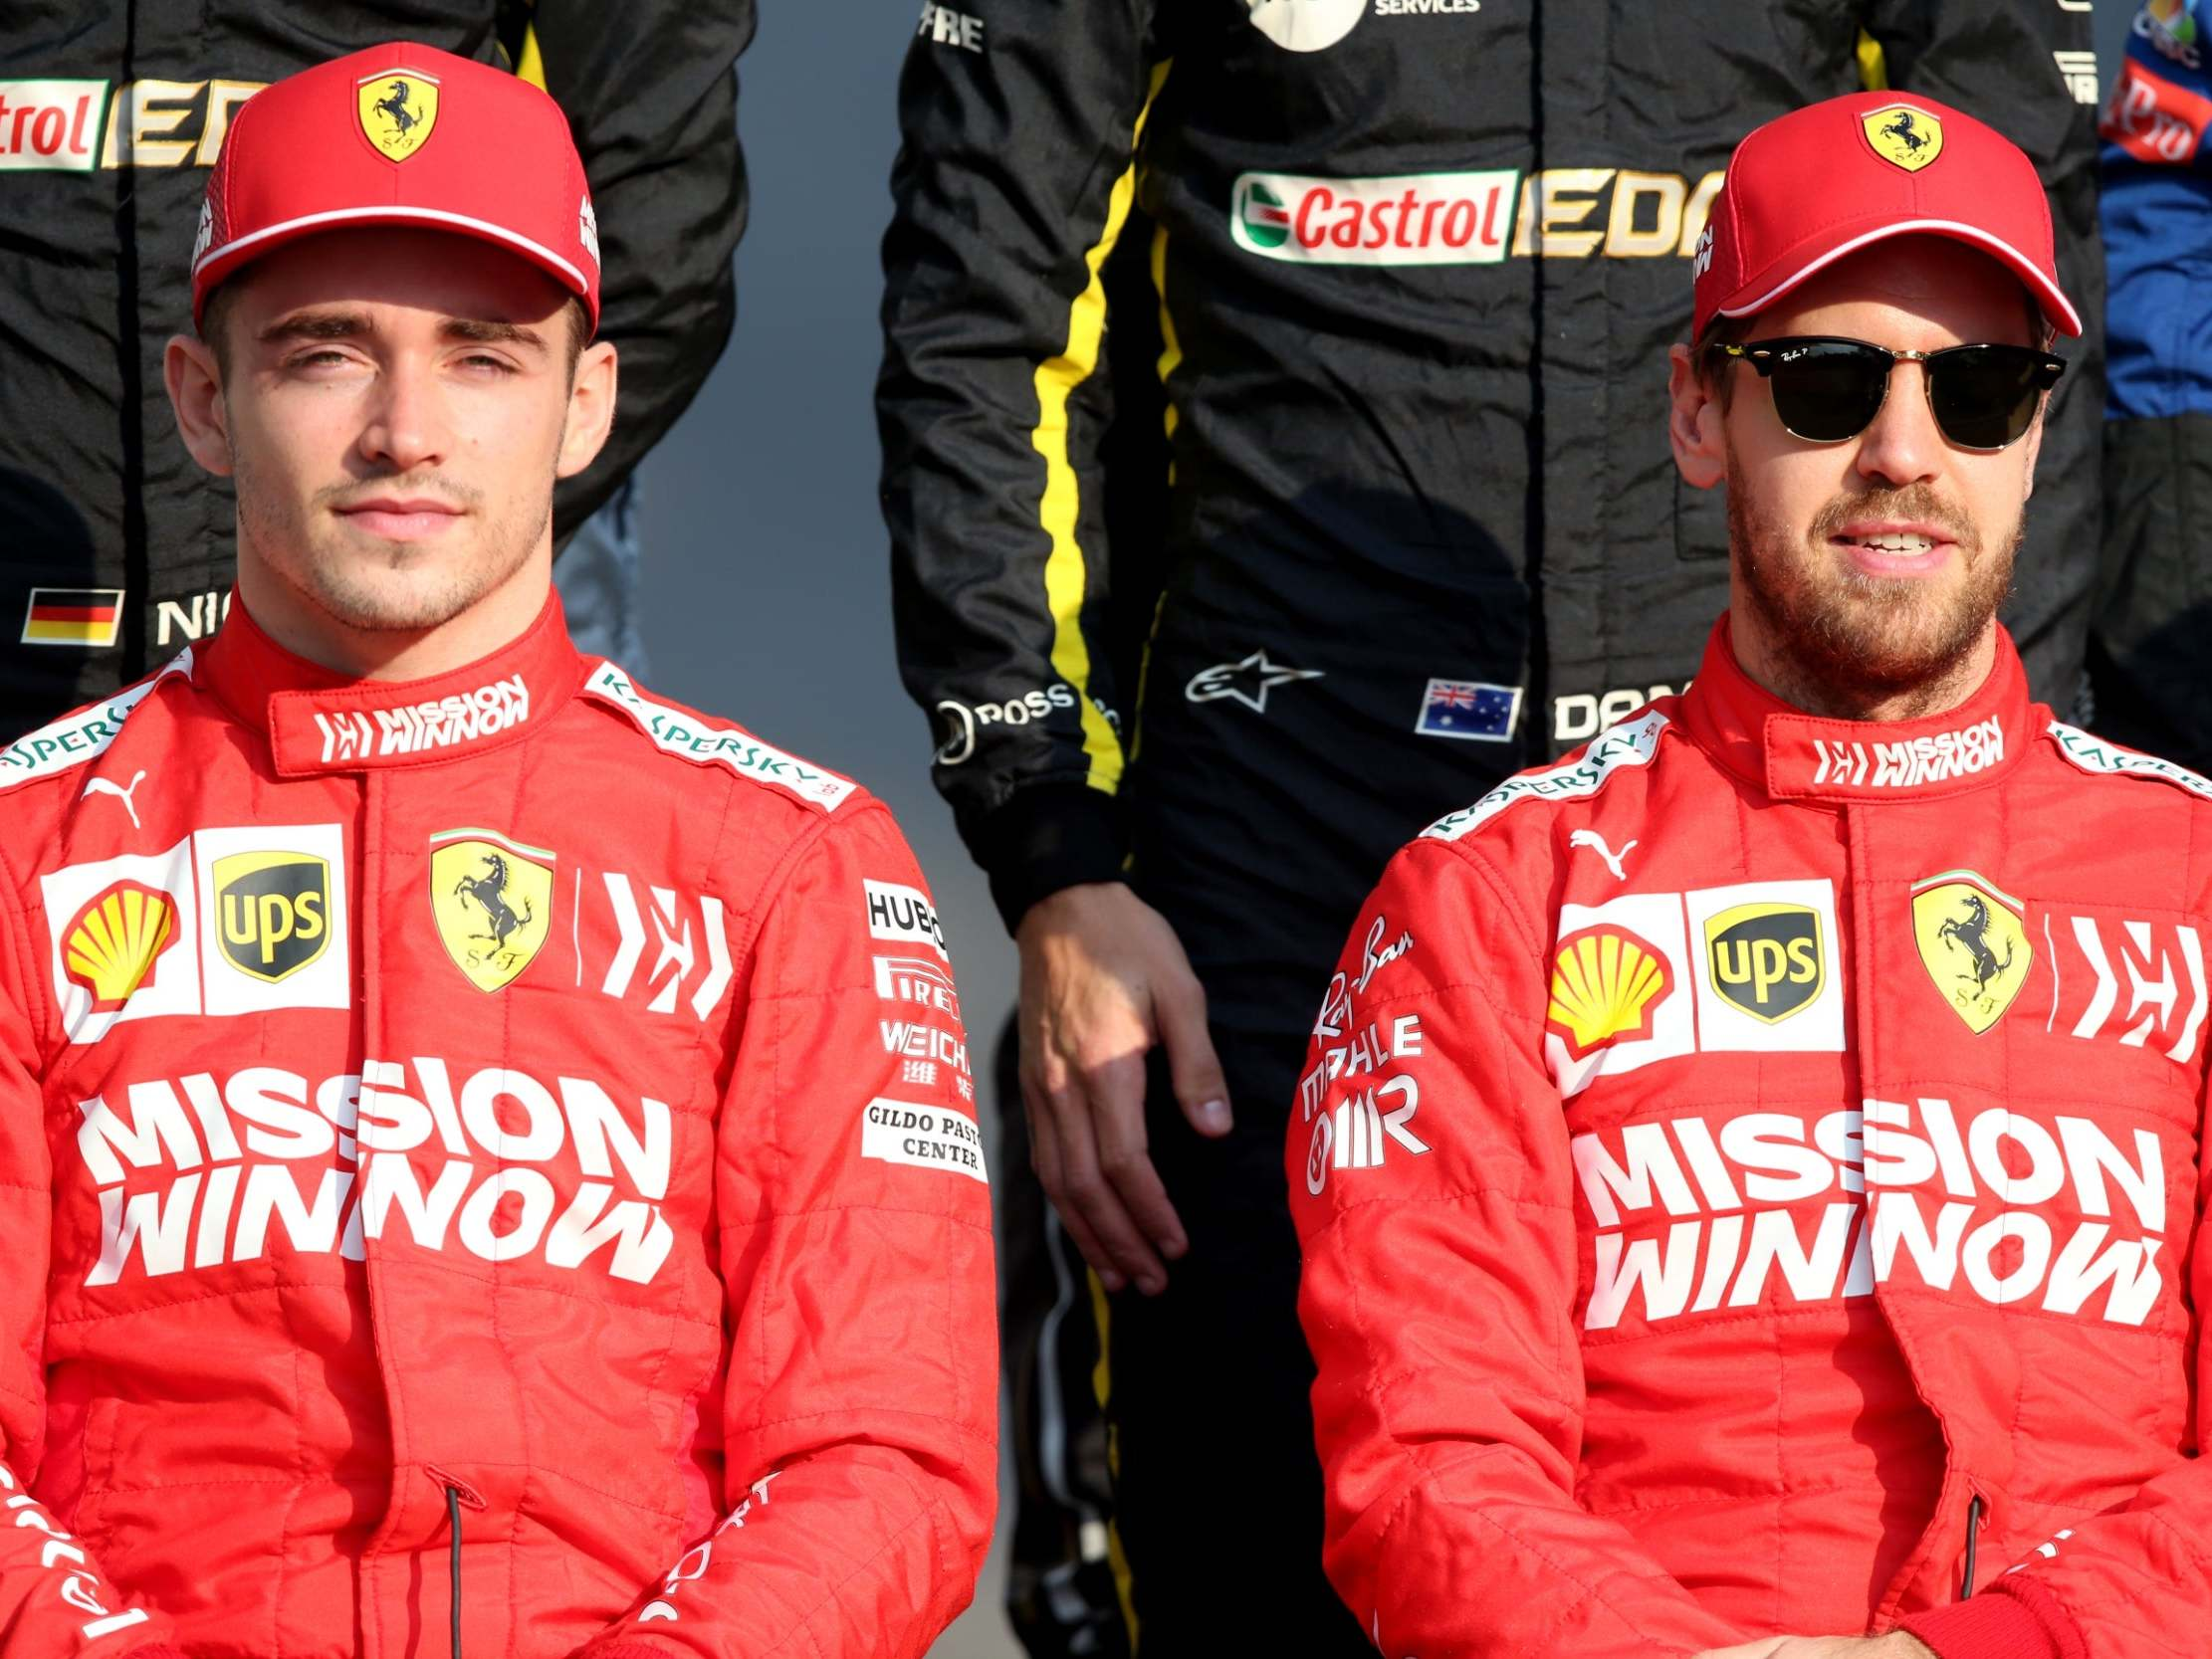 Charles Leclerc vows not to repeat crash with Sebastian Vettel and to learn from his mistakes in 2020